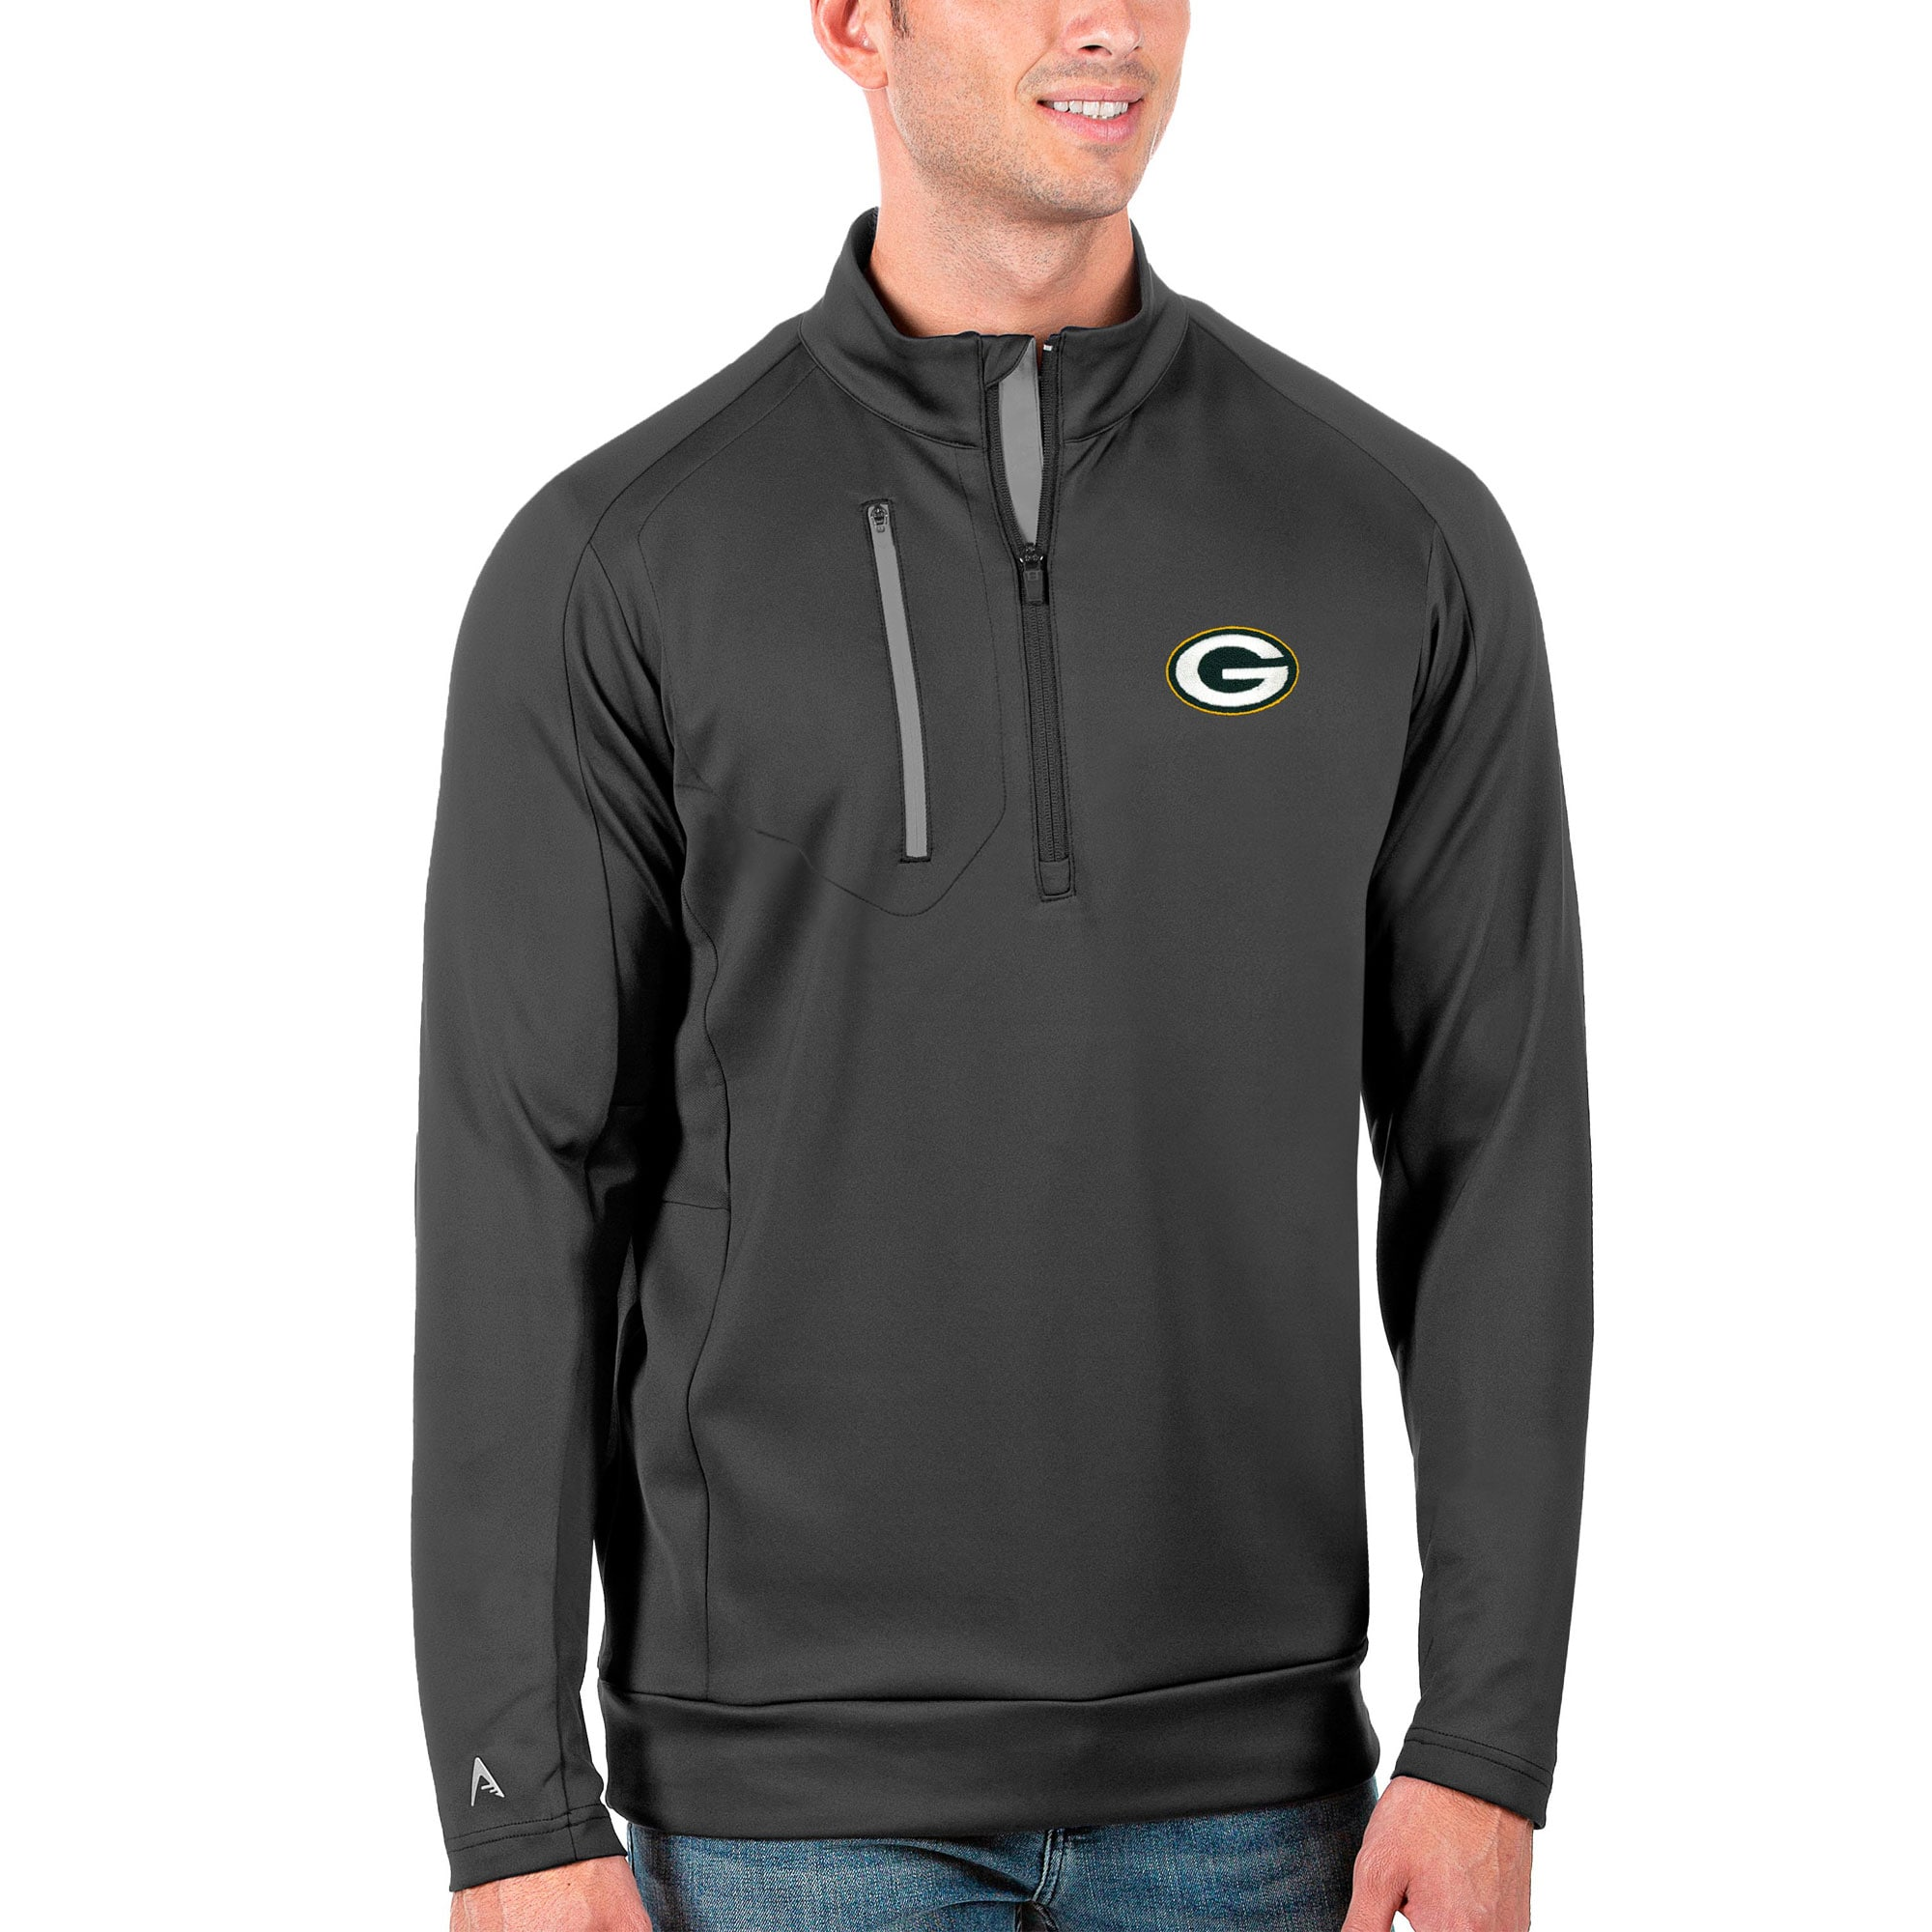 Green Bay Packers Antigua Generation Quarter-Zip Pullover Jacket - Charcoal/Silver